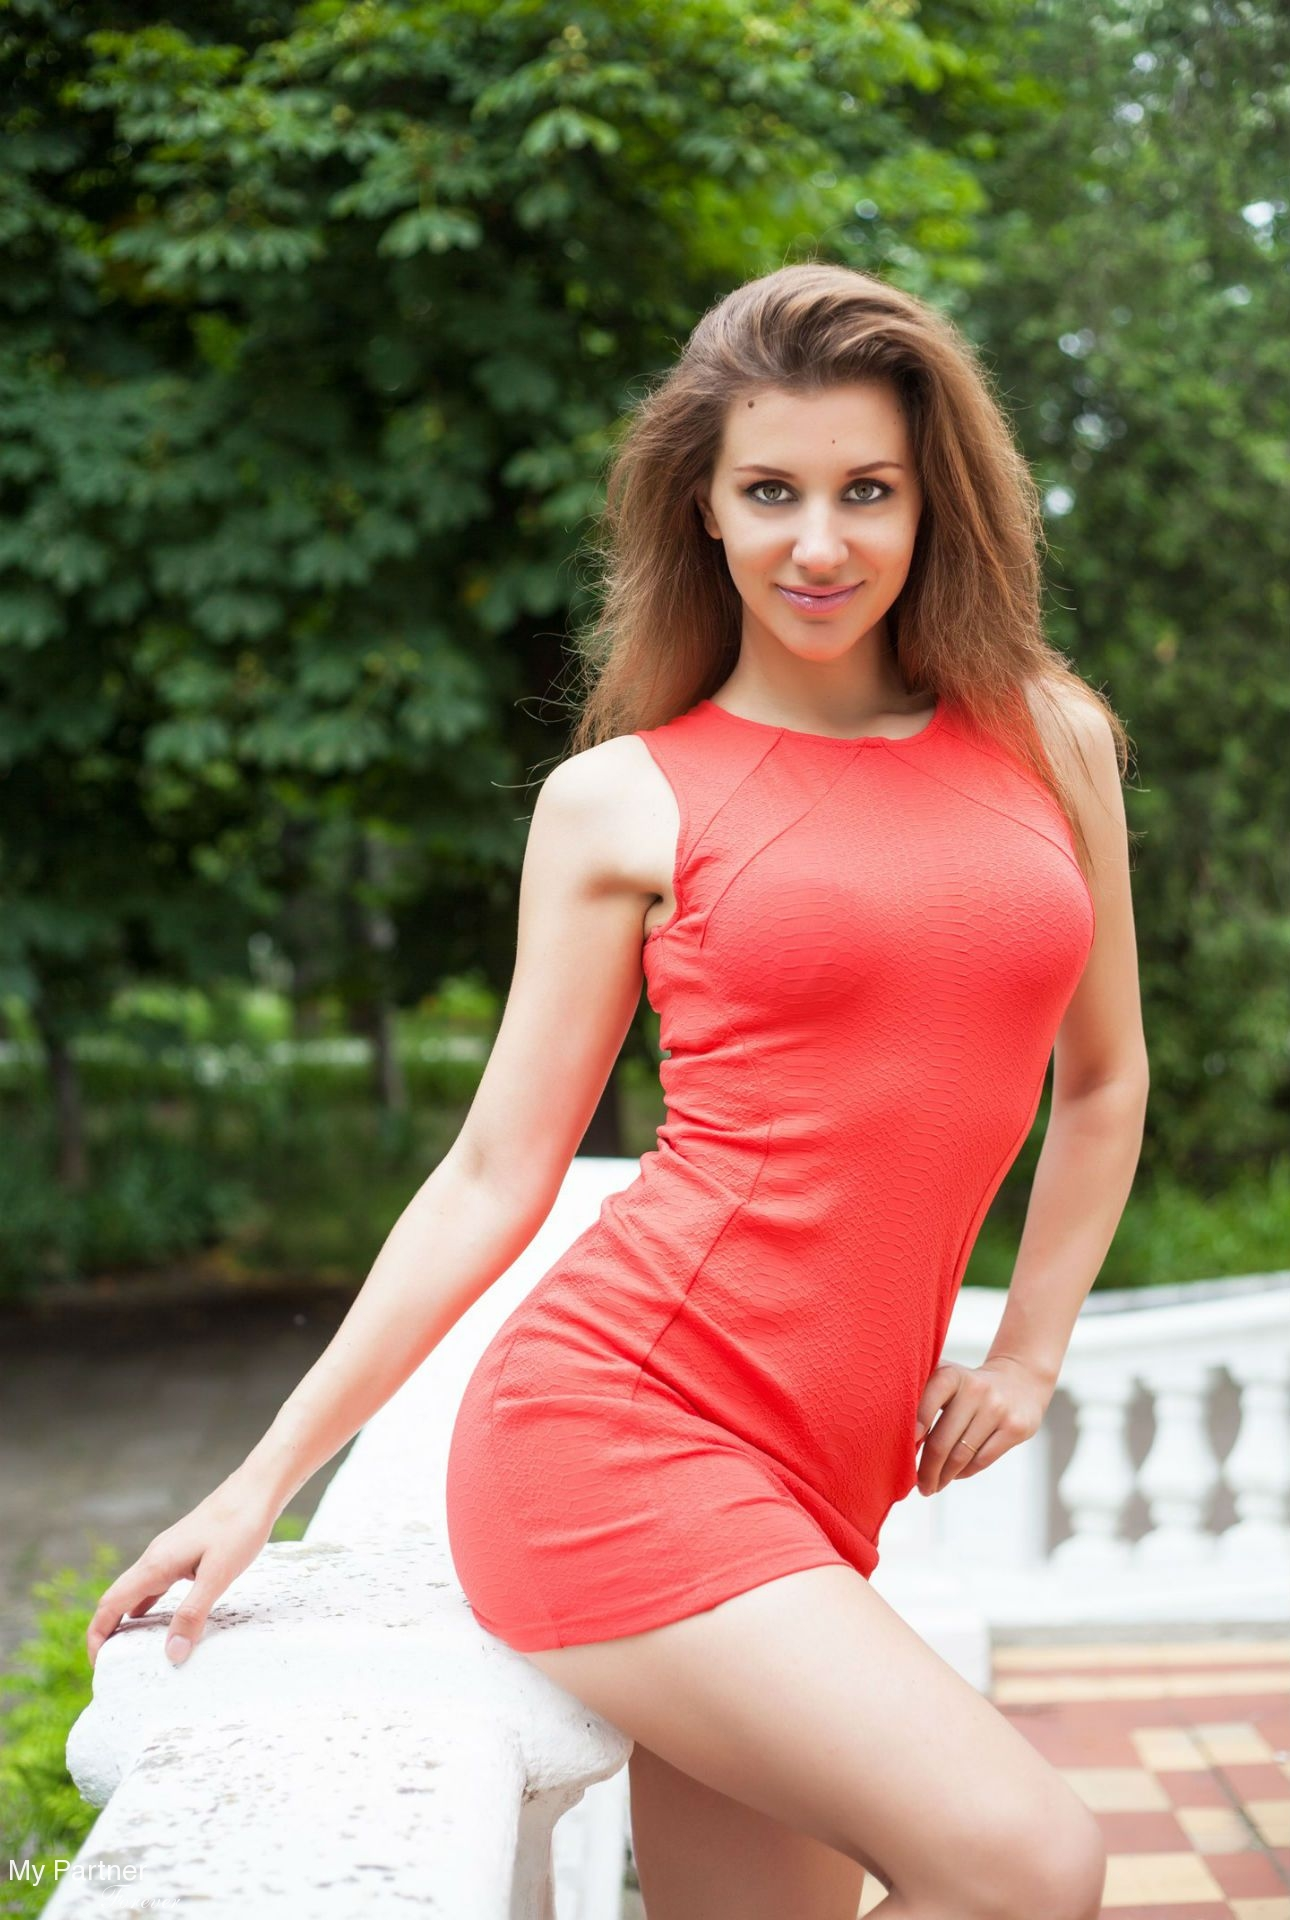 Ukrainian And Russian Women Seeking 53